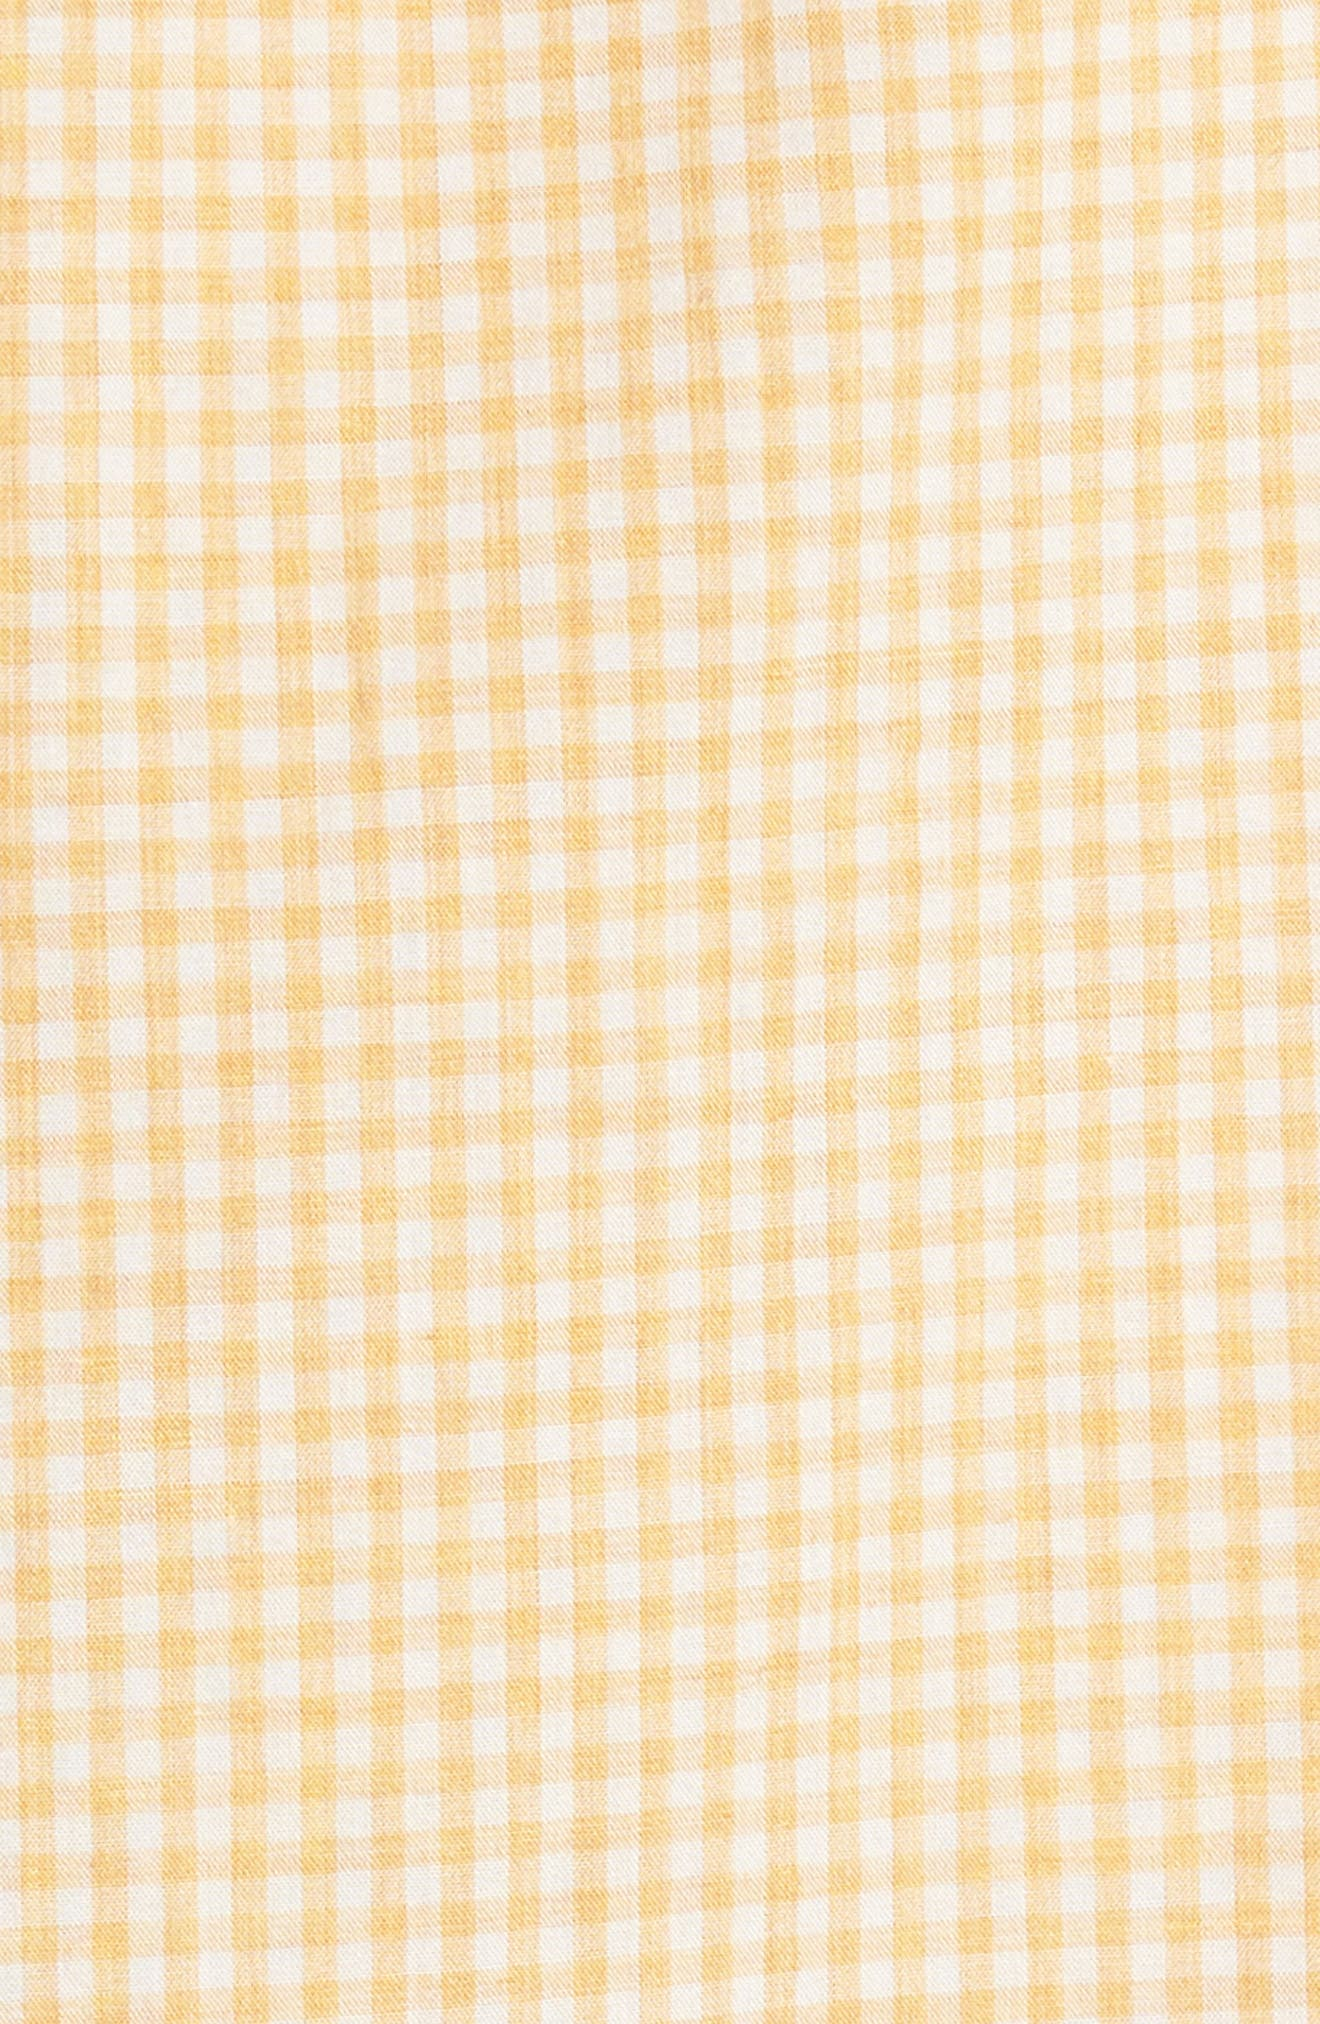 Summerweight Slim Fit Gingham Sport Shirt,                             Alternate thumbnail 3, color,                             Heathered - Heather Gold